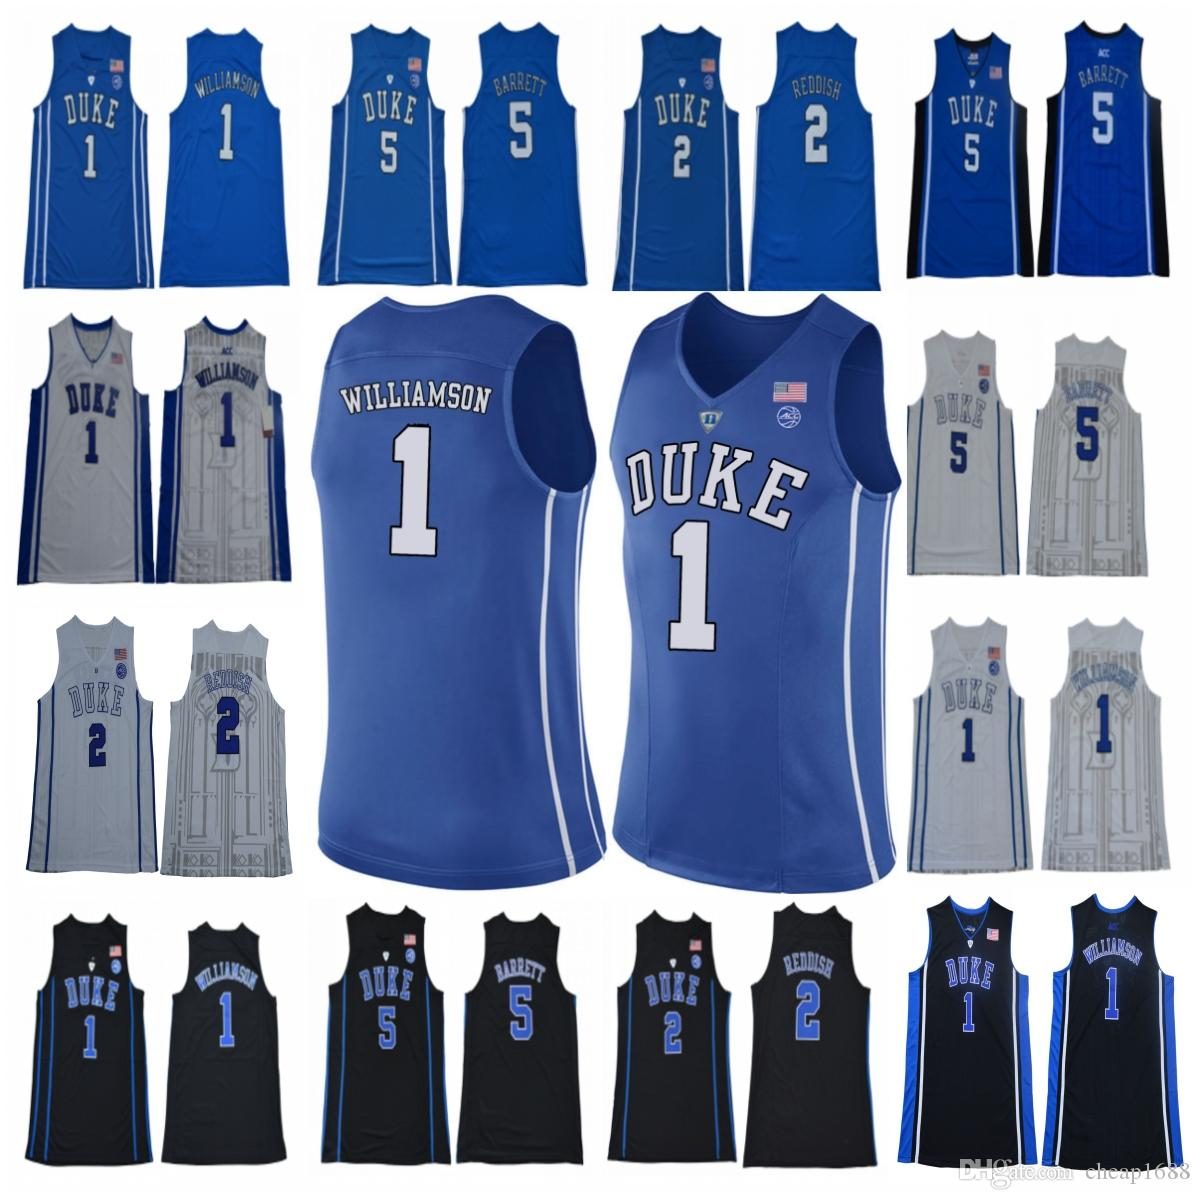 huge discount 2f50c 3fab9 NCAA Duke Blue Devils 1 Zion Williamson 5 RJ Barrett 2 Cam Reddish White  Blue Black men youth College Basketball Jerseys